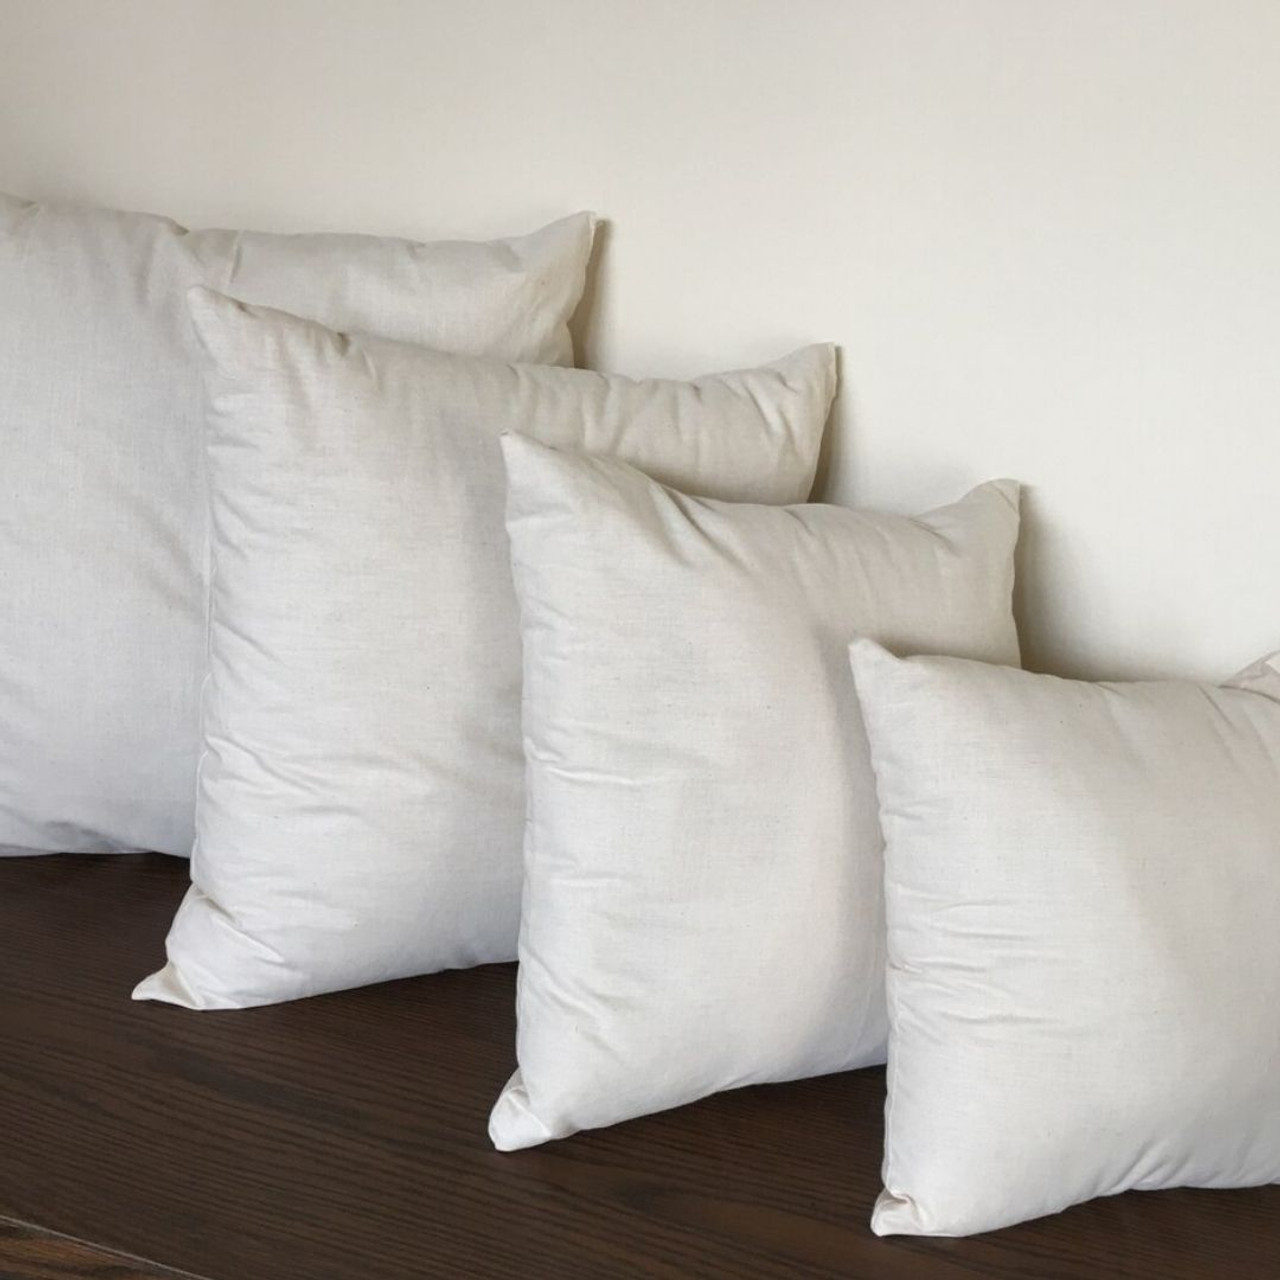 Pillow Inserts with Organic Cotton Batting Fill and Organic Cotton Covers - CeCe's  Wool